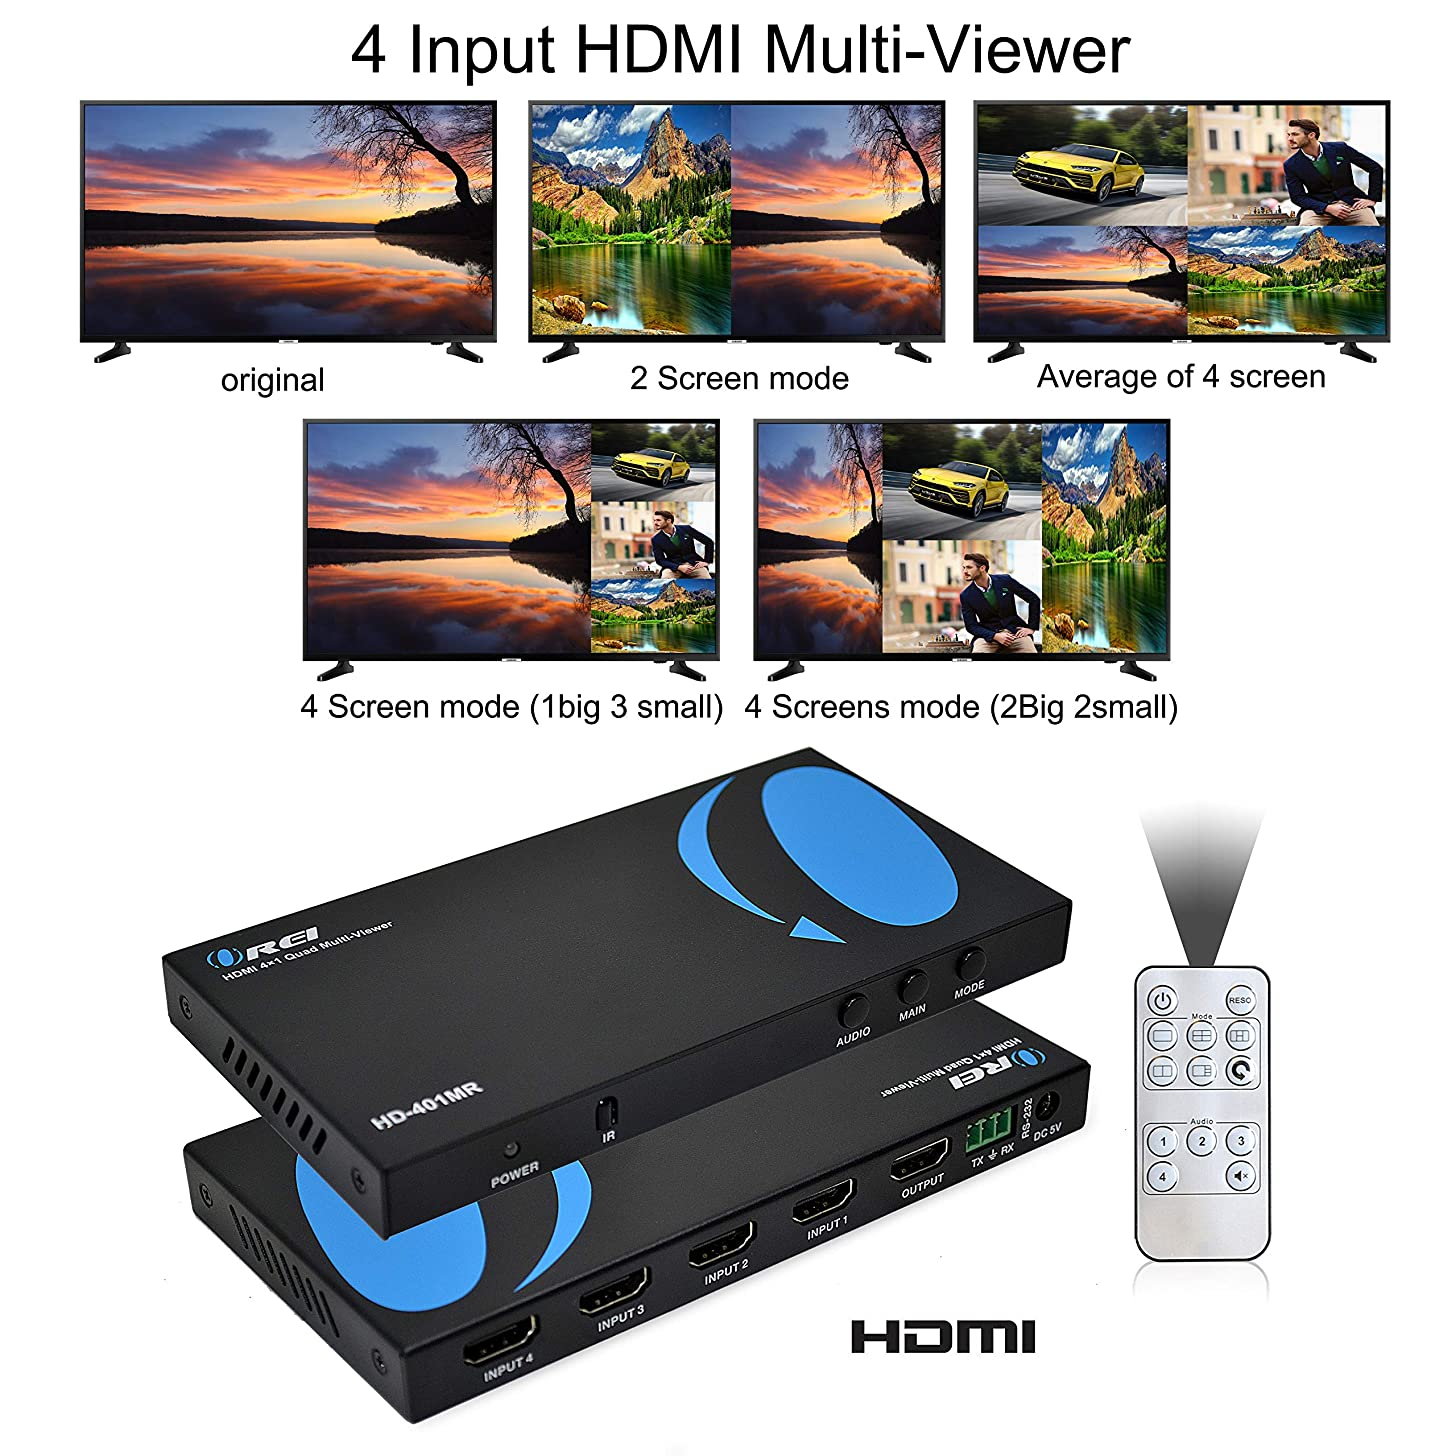 Orei Quad Multi-Viewer 4x1 HDMI Switcher 4 Ports Seamless Switch and IR Remote Support 1080P for PS4/PC/Stb/DVD/Security Camera